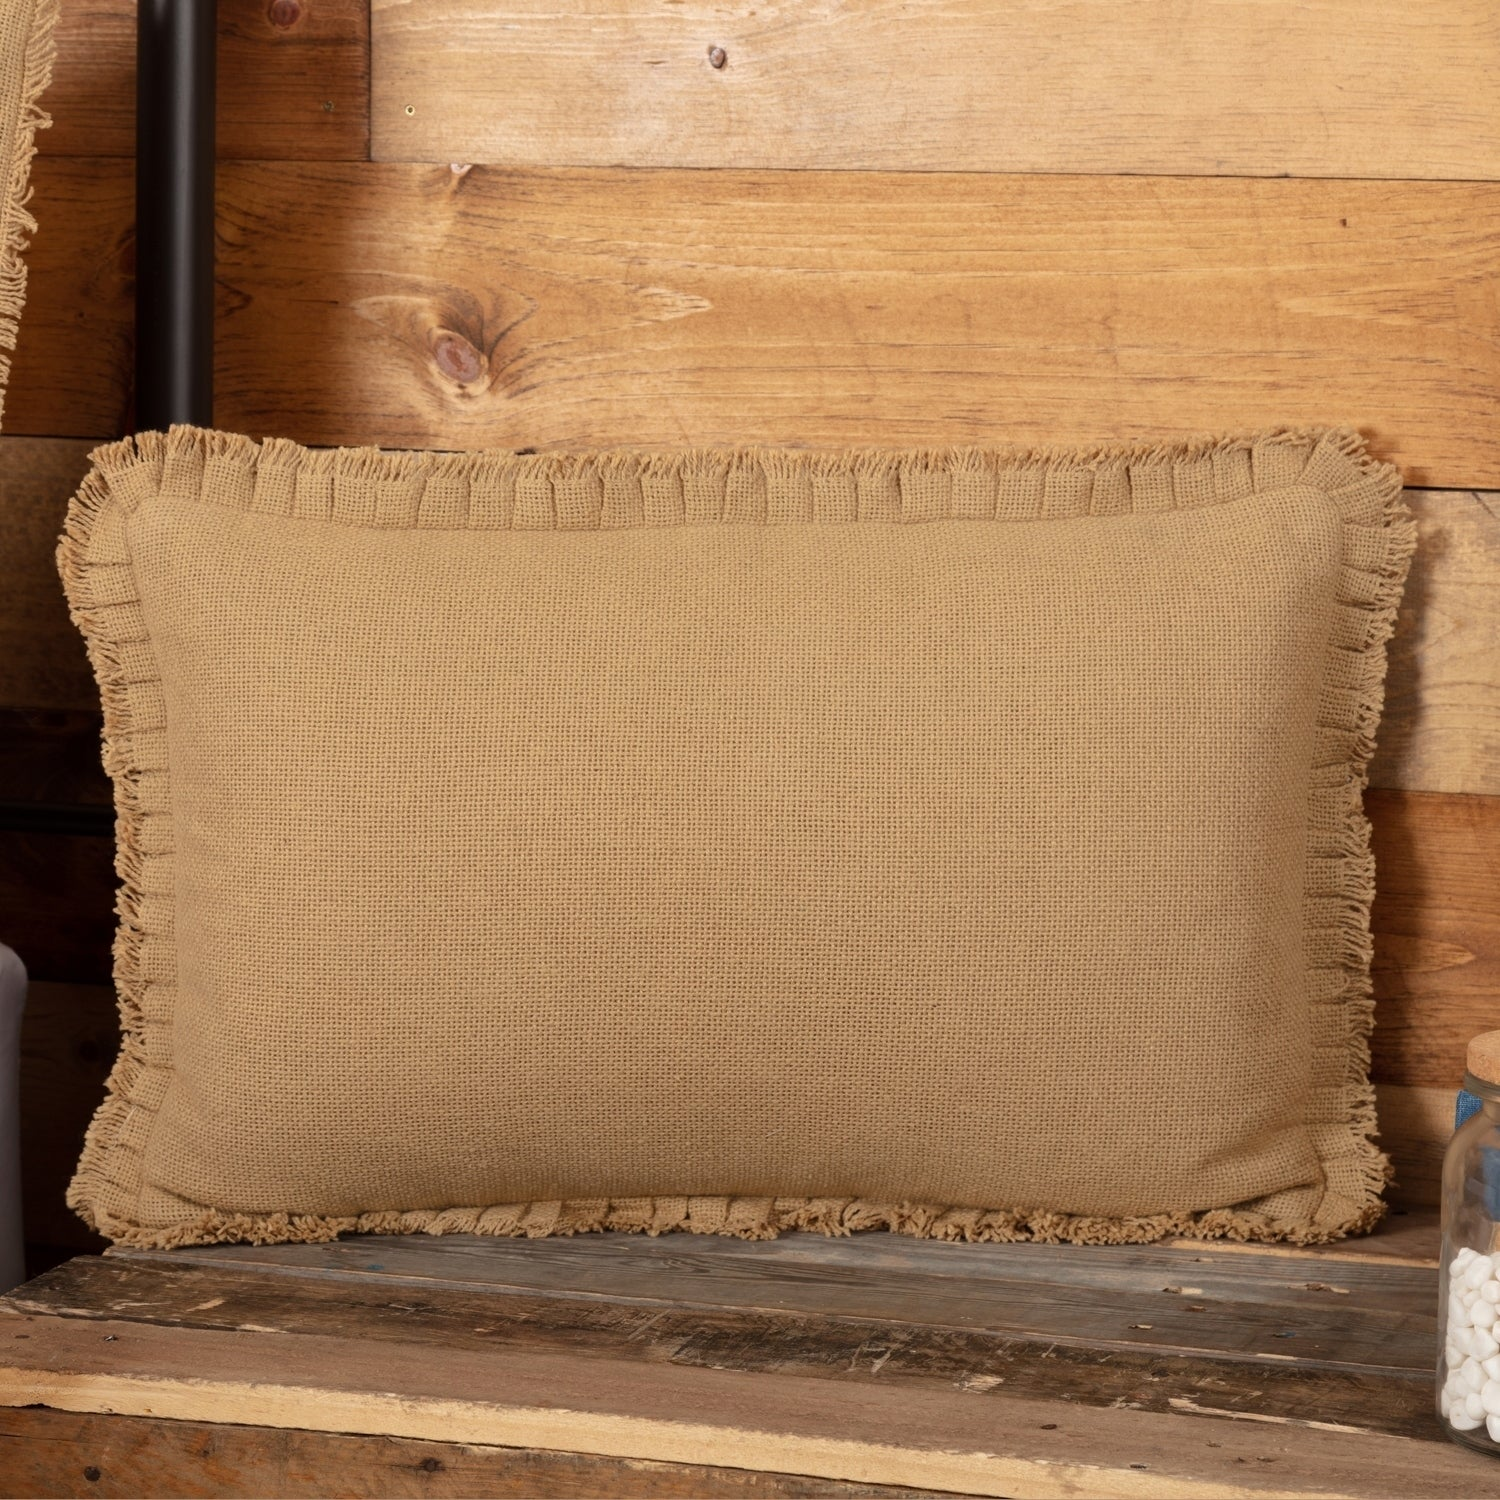 Farmhouse Bedding Veranda Burlap Tan 14x22 Pillow Cotton Solid Color Cover Insert Rectangle